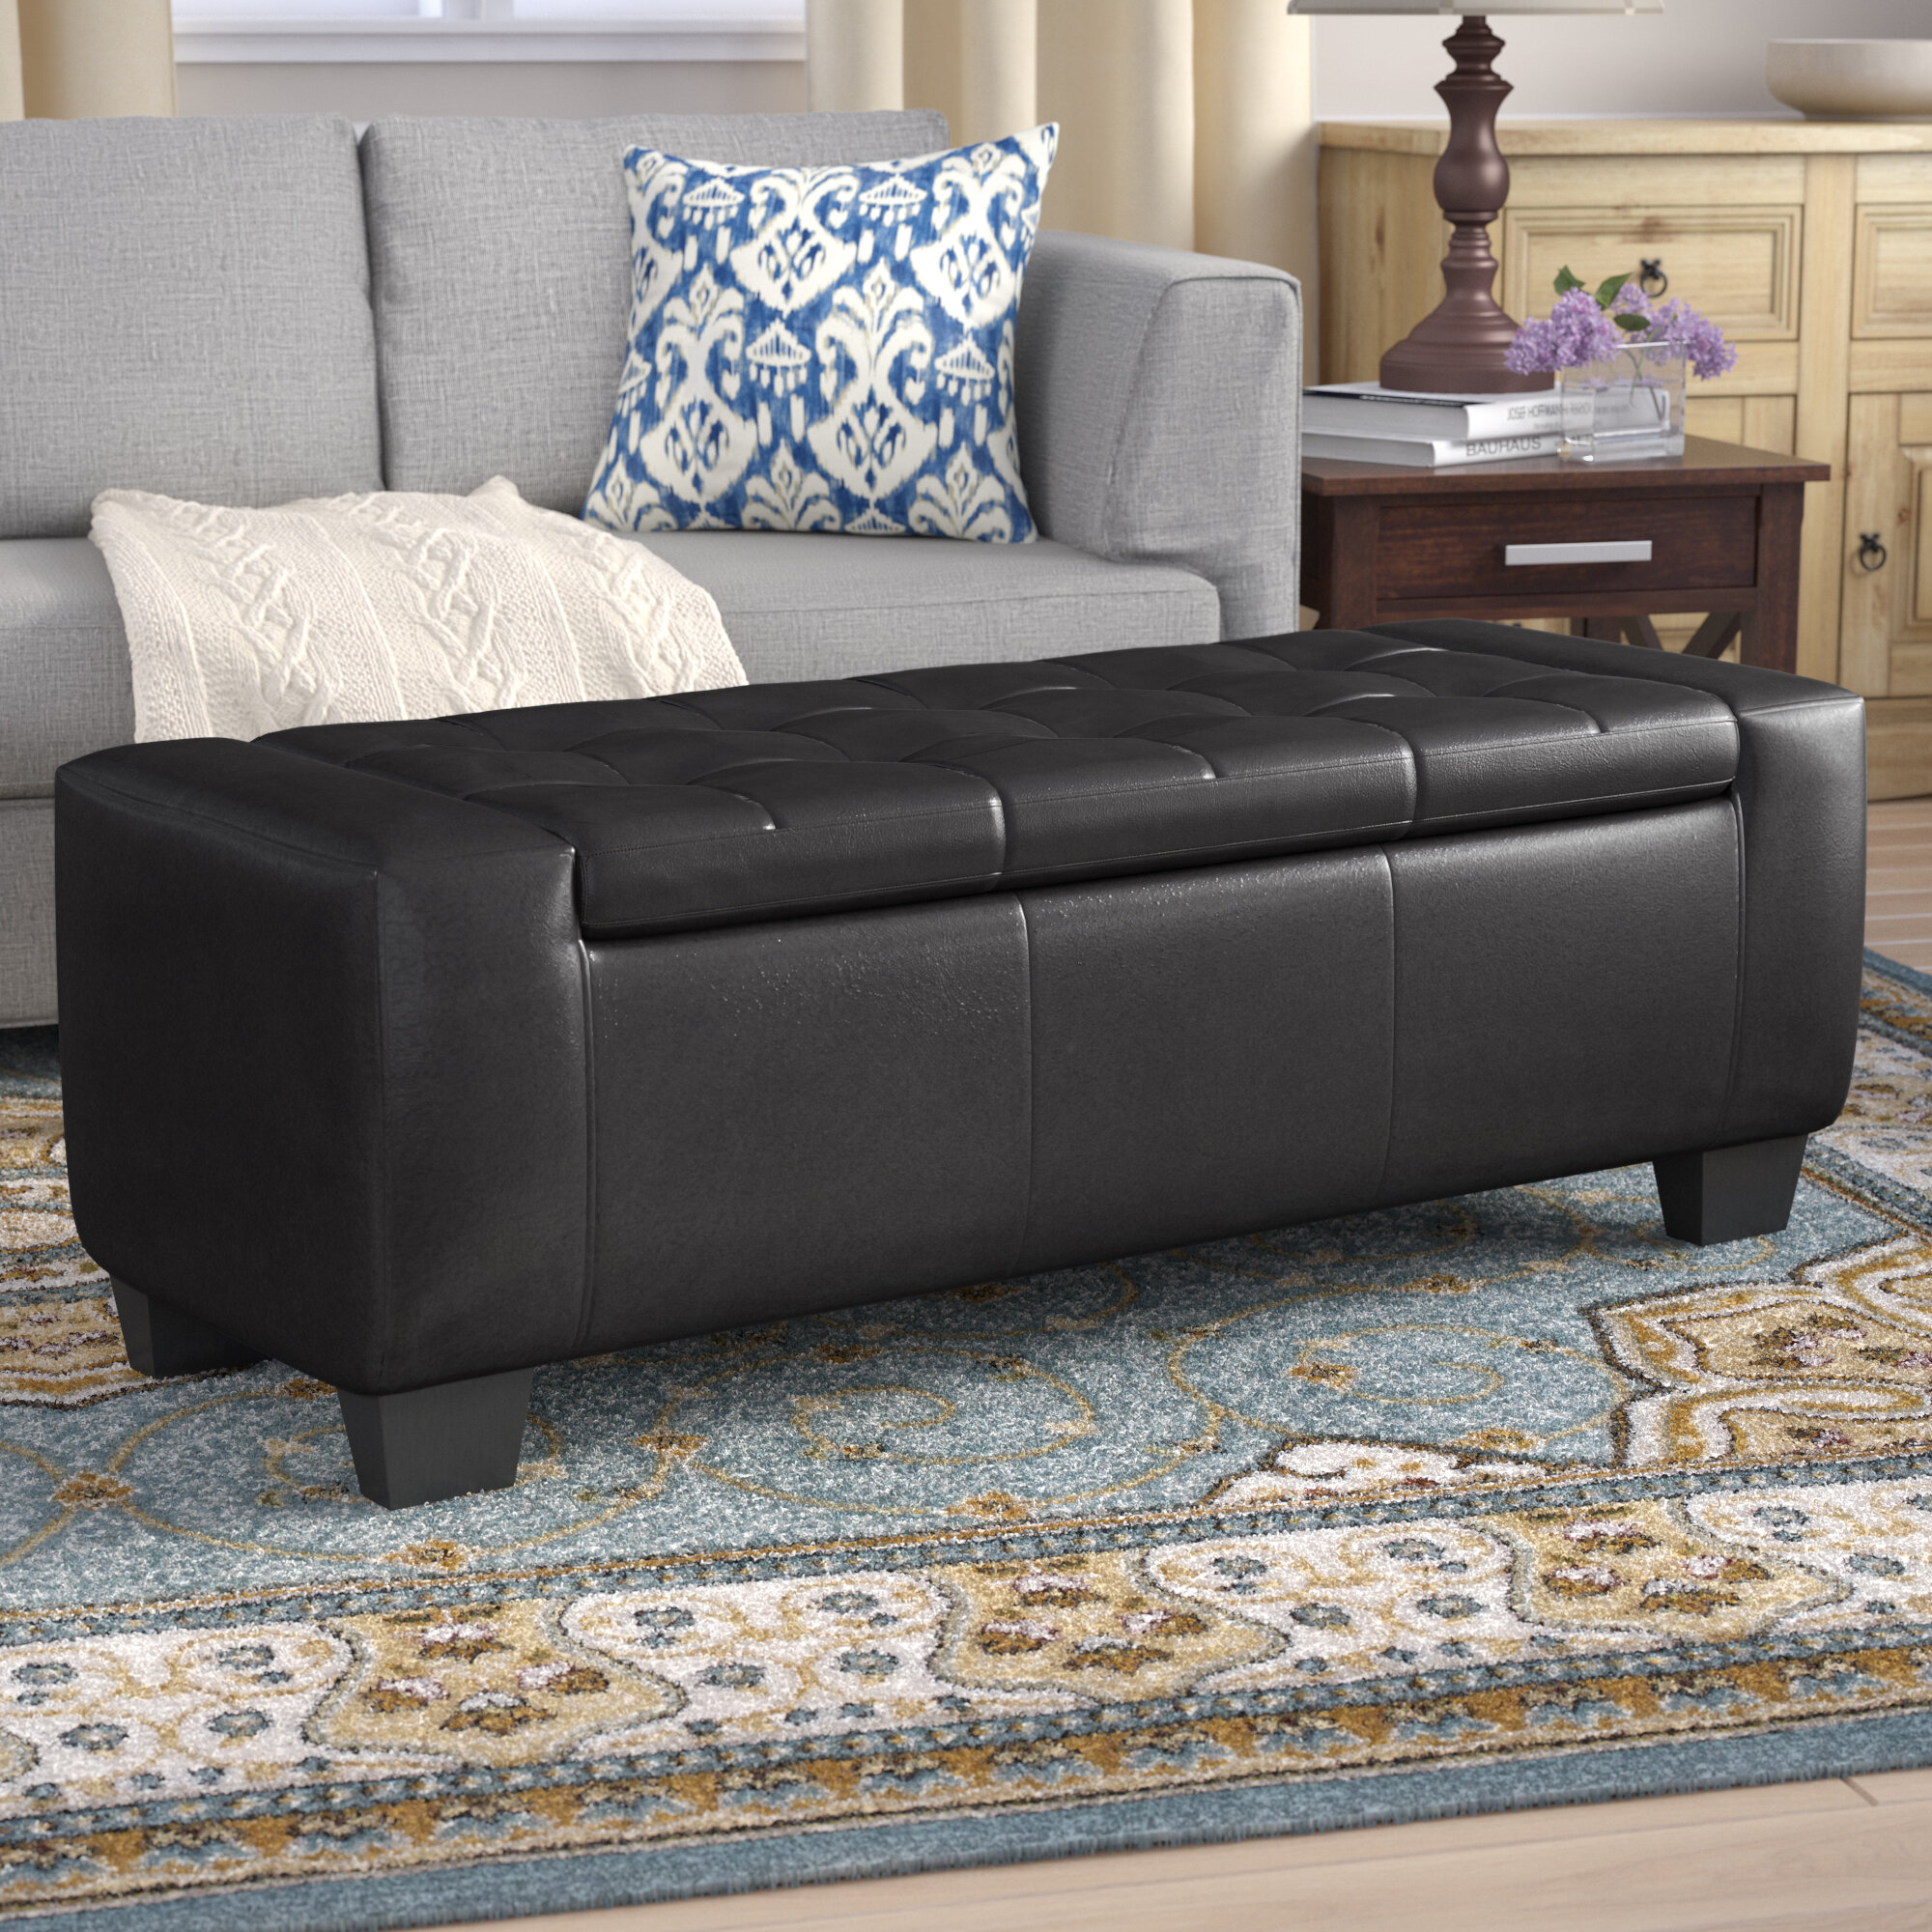 Astounding Pellegrin Leather Tufted Storage Ottoman Andrewgaddart Wooden Chair Designs For Living Room Andrewgaddartcom